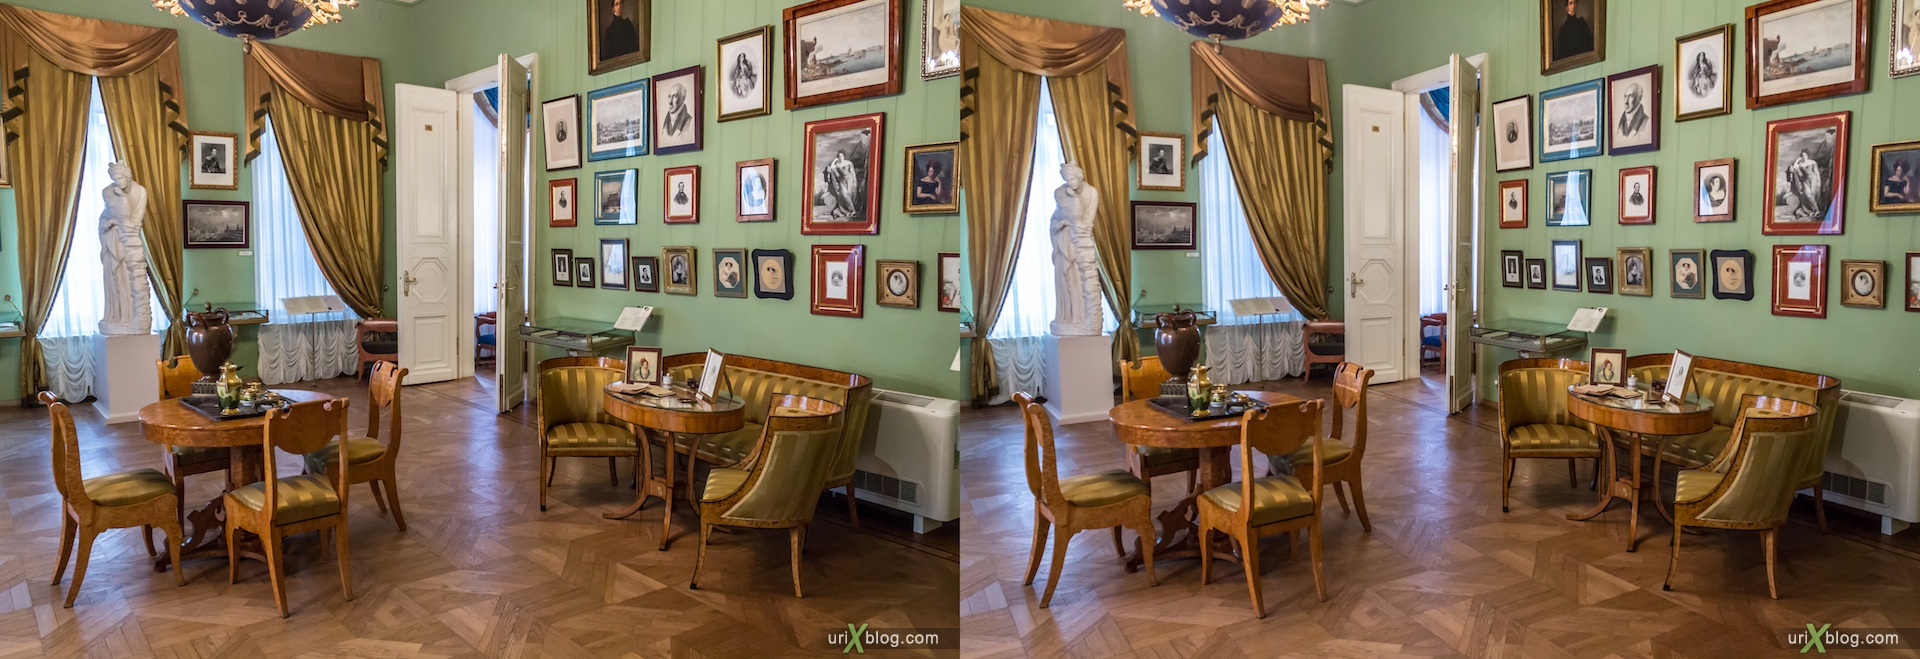 2013, Pushkin museum, estate of Khrushchev-Seleznyov, Moscow, Russia, 3D, stereo pair, cross-eyed, crossview, cross view stereo pair